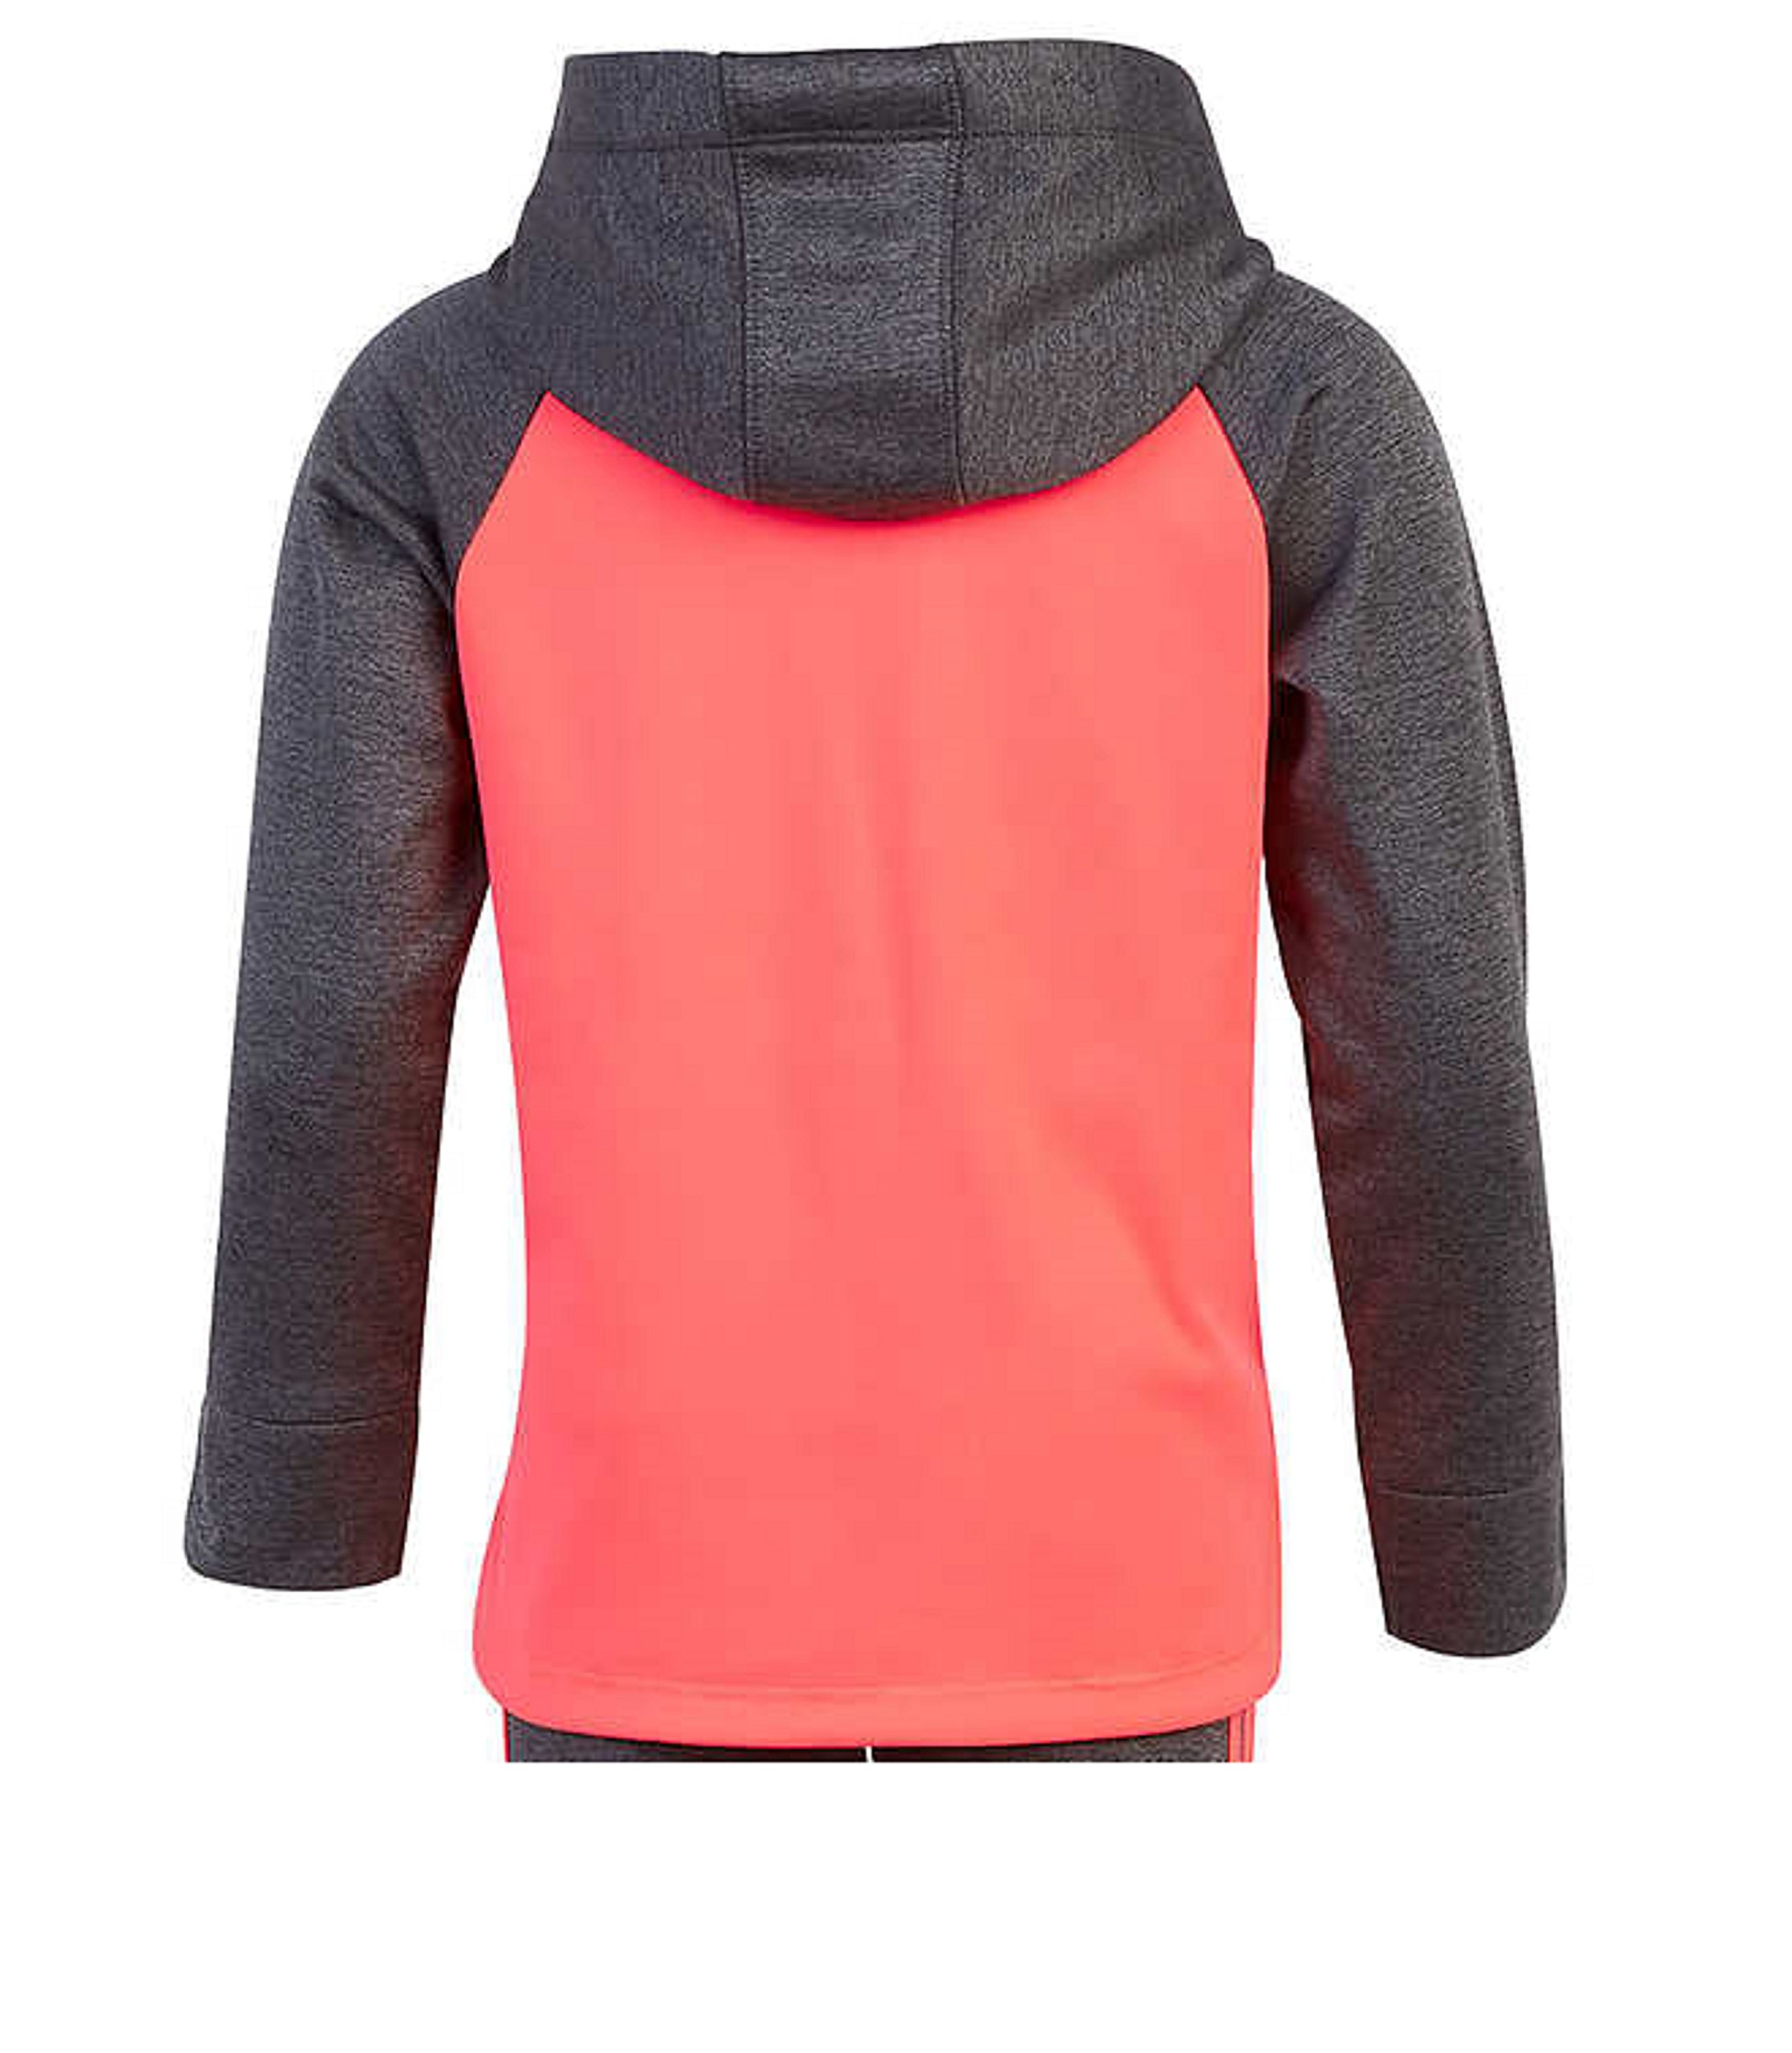 adidas Girls' Tricot Hoodie Jacket and Pant Set (4T, Heather Gray/Neon Pink) by adidas (Image #4)